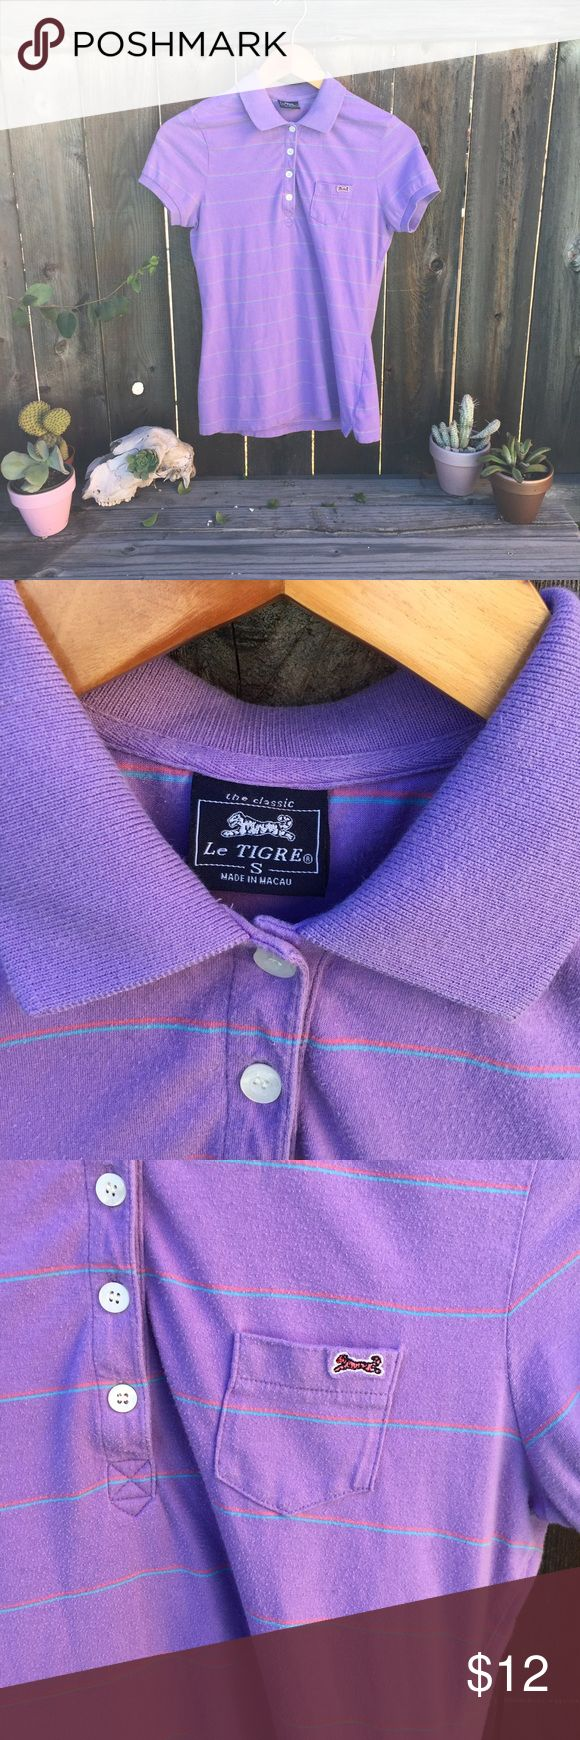 """VTG 90s Le Tigre light purple striped shirt- SZ S 90s le Tigre shirt- SZ S light purple with coral teal stripes - front length 22"""" armpit to armpit 17.5"""" has piling see pix- no rips or stains :) Vintage Tops Tees - Short Sleeve"""